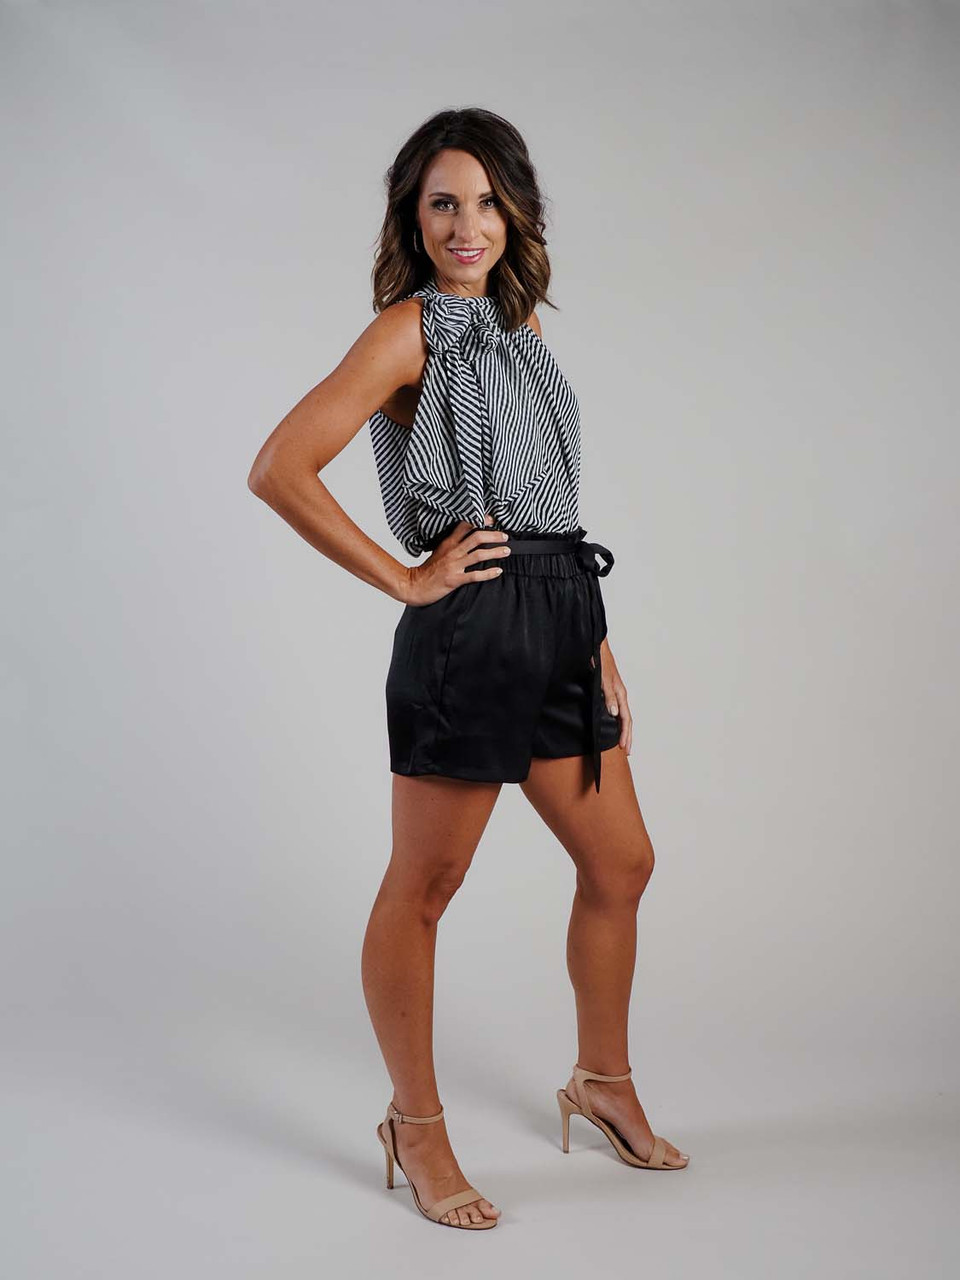 black and white striped large bow top sleeveless